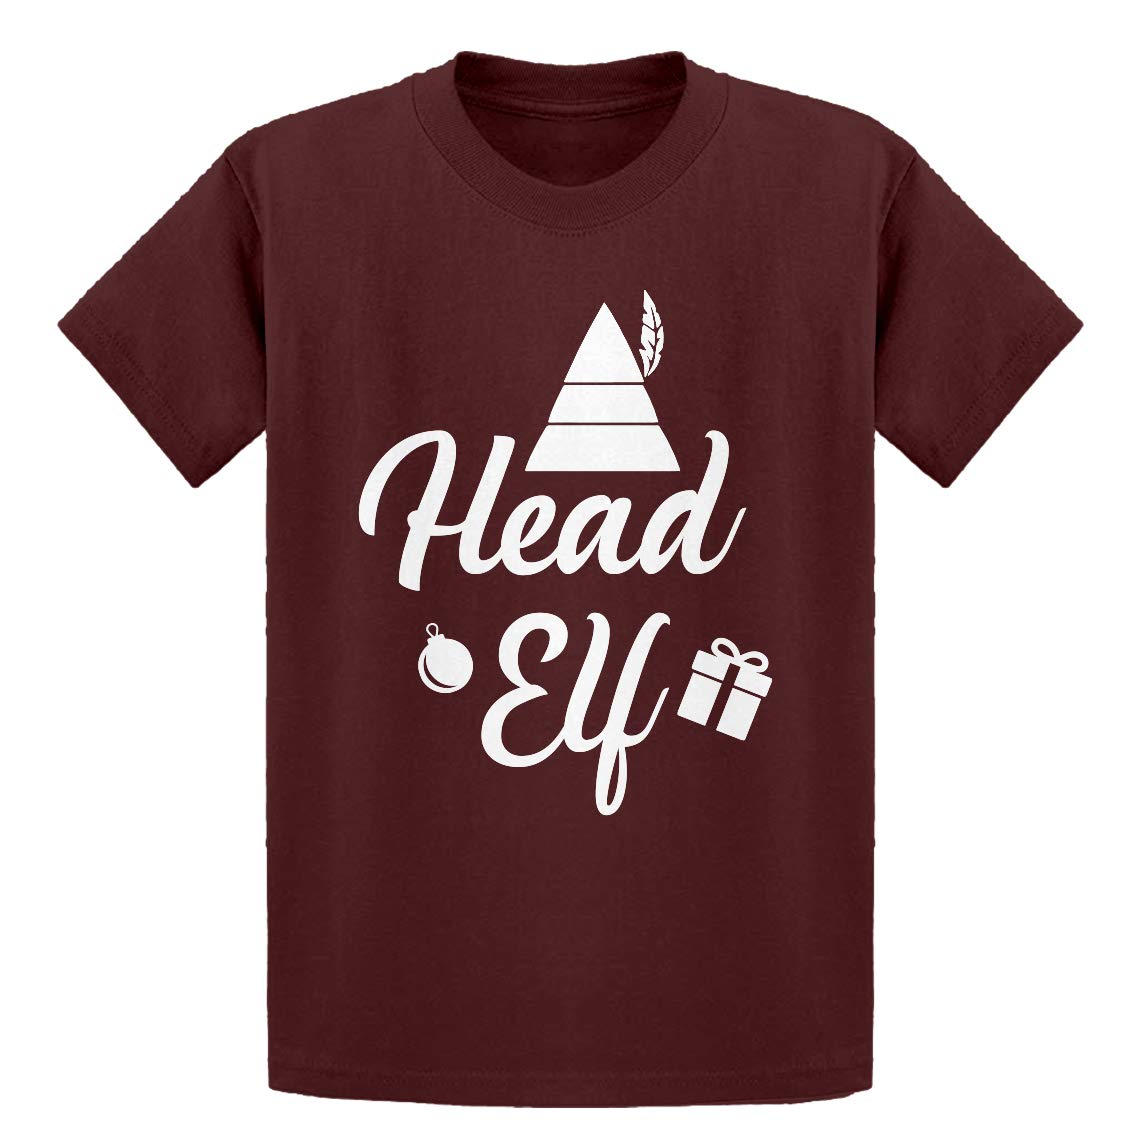 Indica Plateau Youth Head Elf Kids T-Shirt